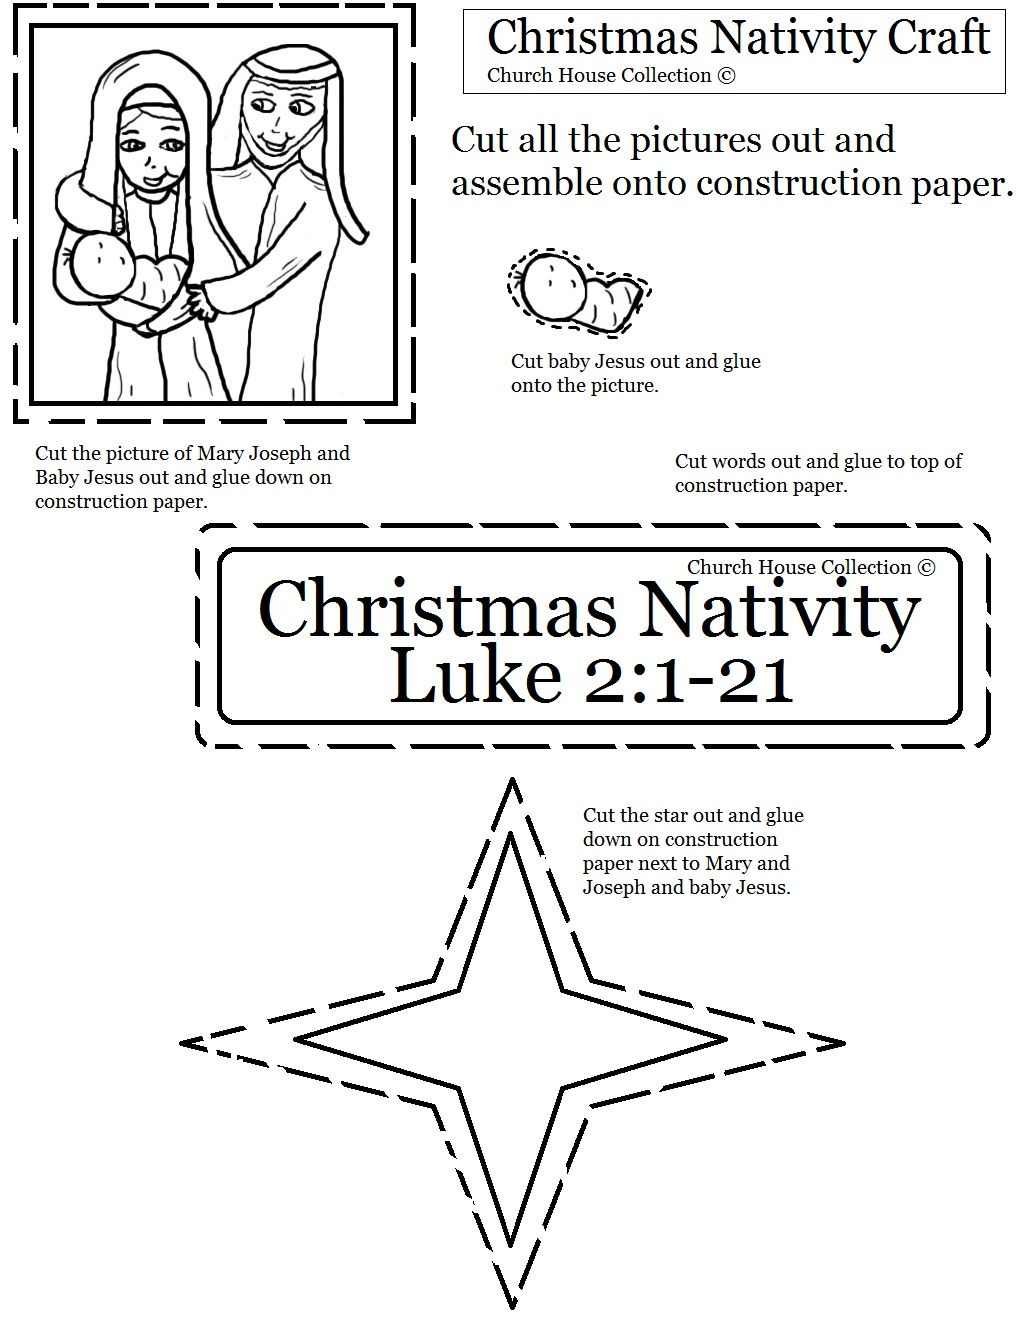 Nativity cutout sheet for kids in Sunday school or children\u002639;s church  Christmas Ideas For